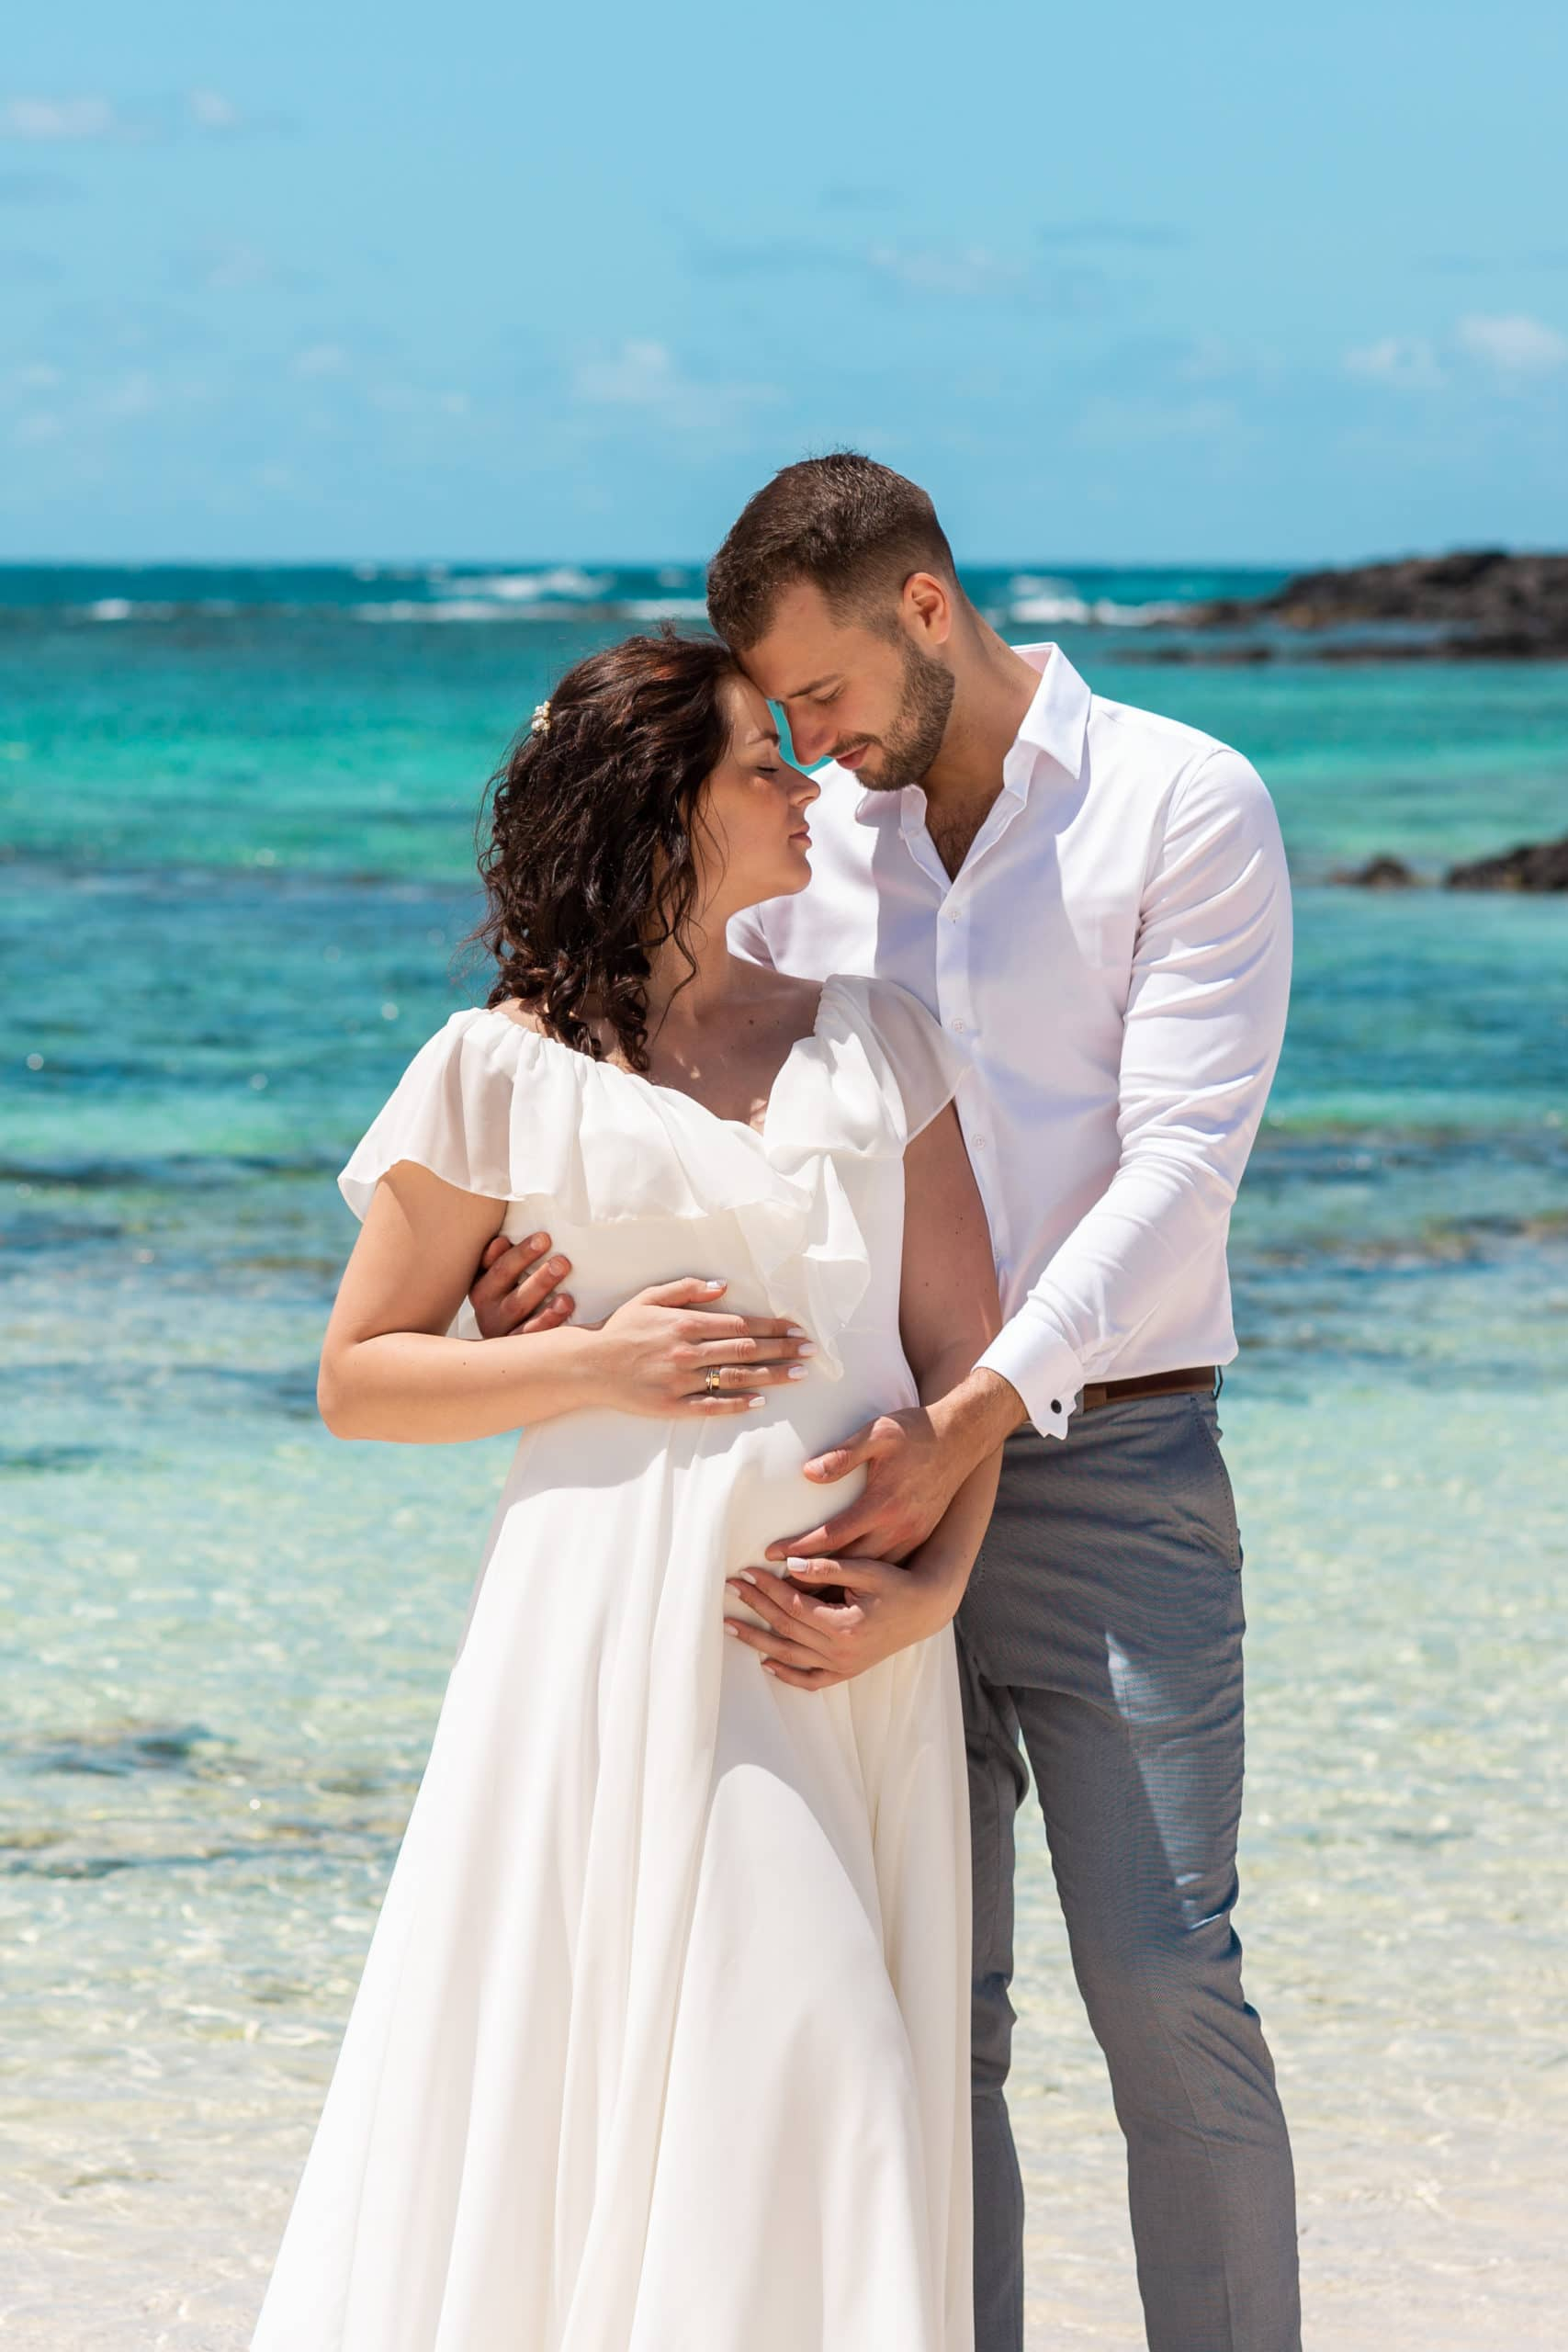 Wedding dresses for prospective mothers